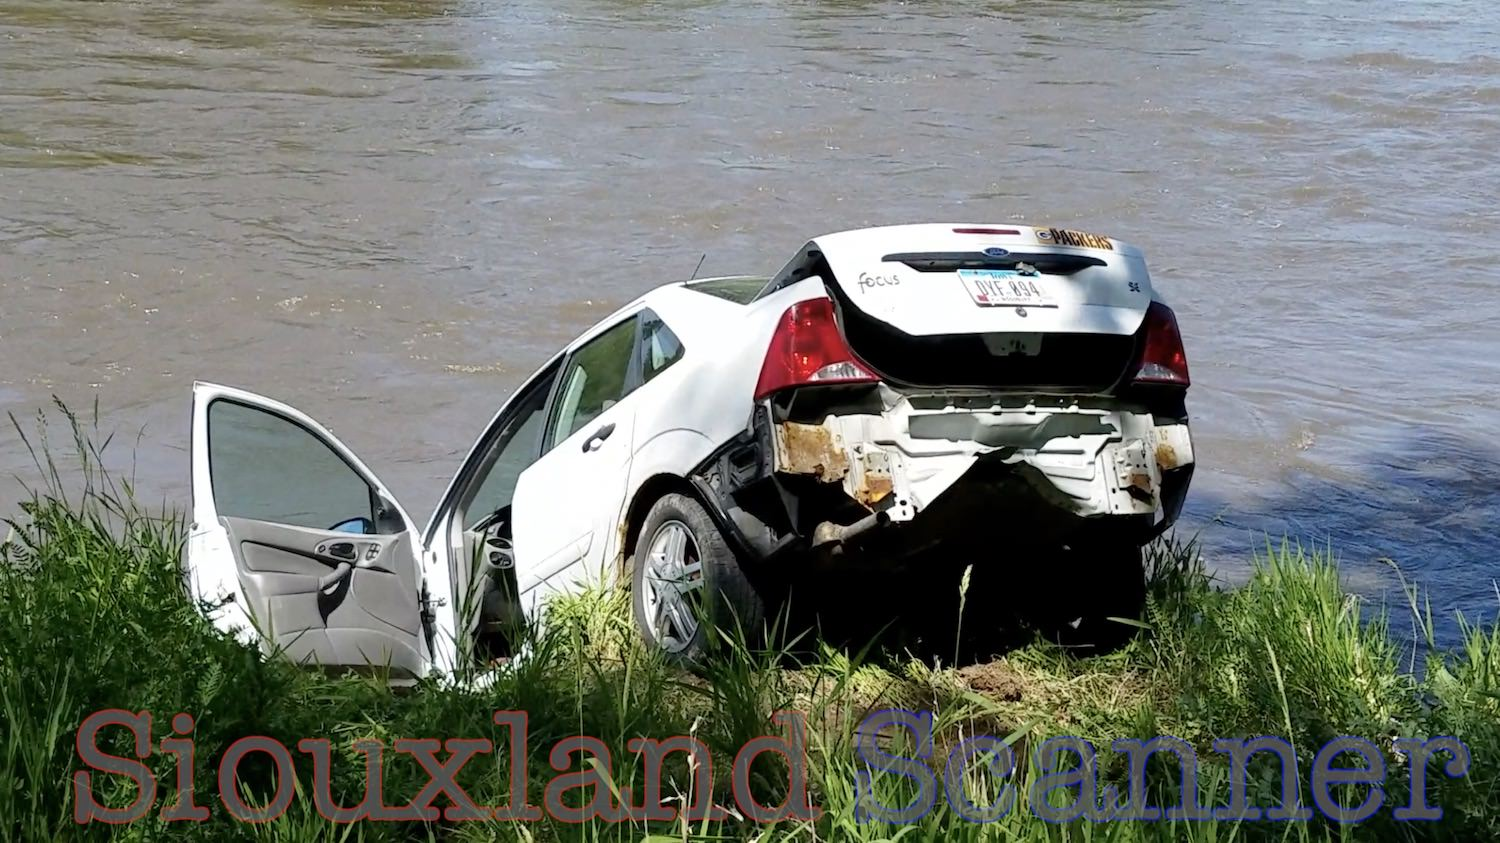 Car goes over embankment and into Big Sioux River